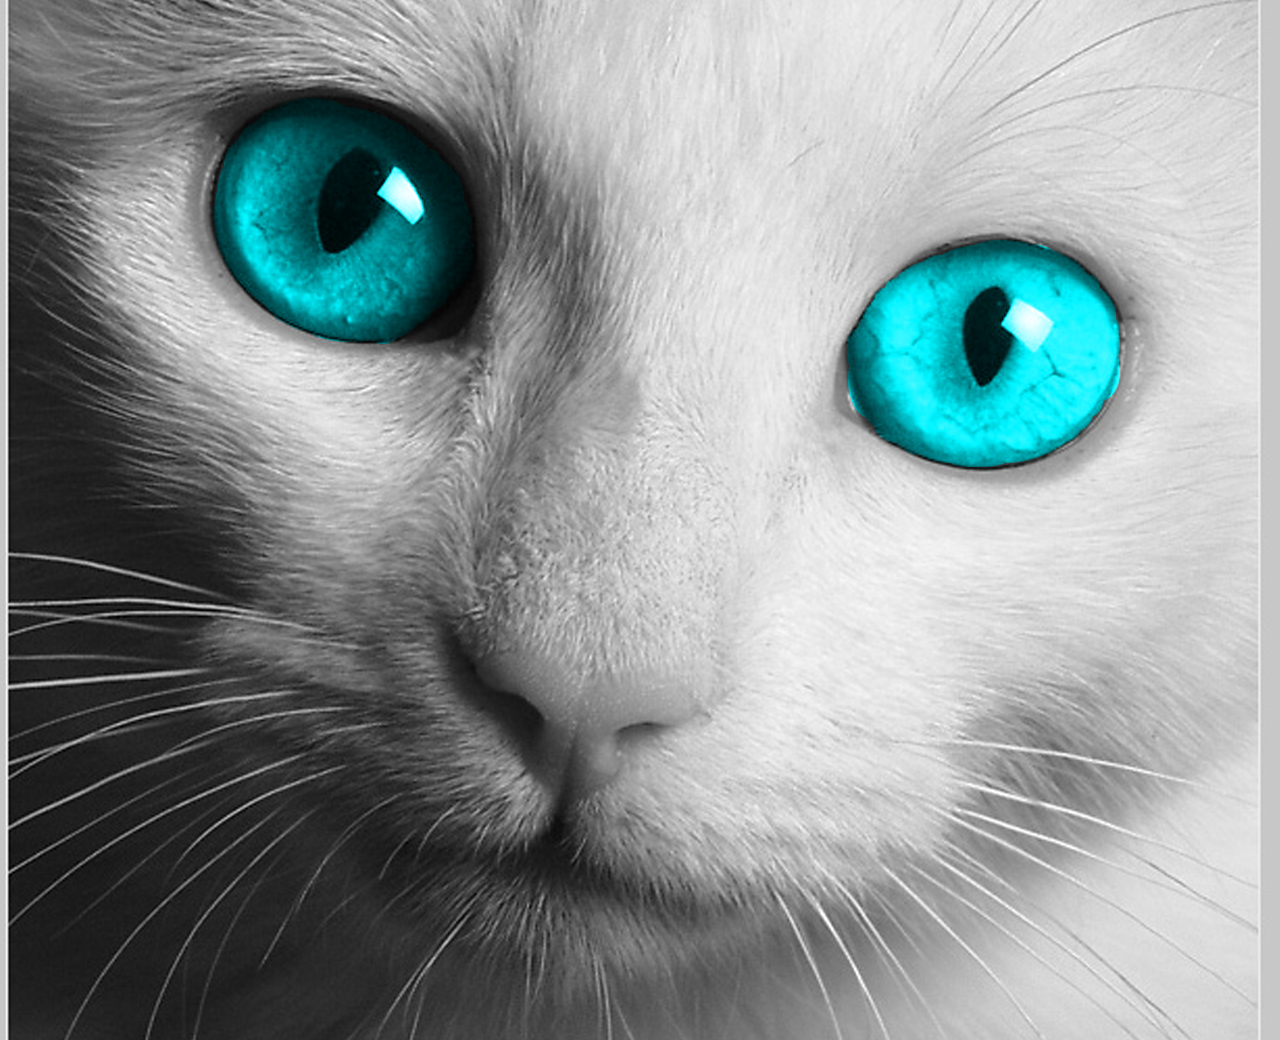 White Cat With Blue Eyes HD Wallpaper Free Download